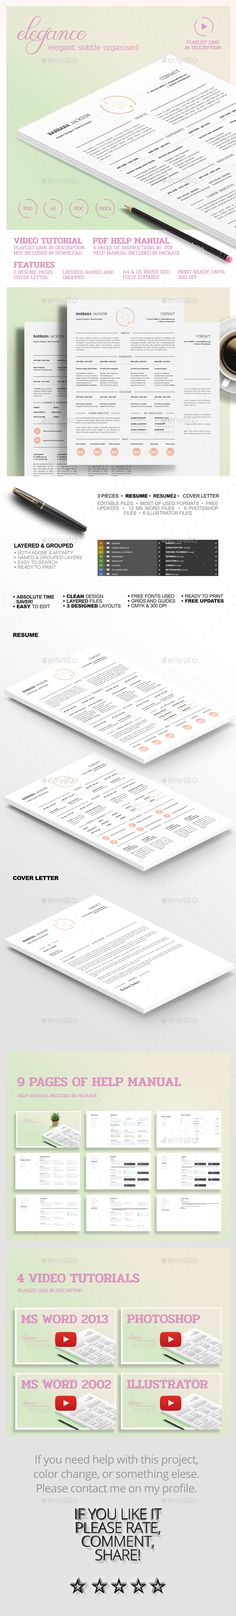 This Is Cv Resume Design  Resume Stationery And Resume Design